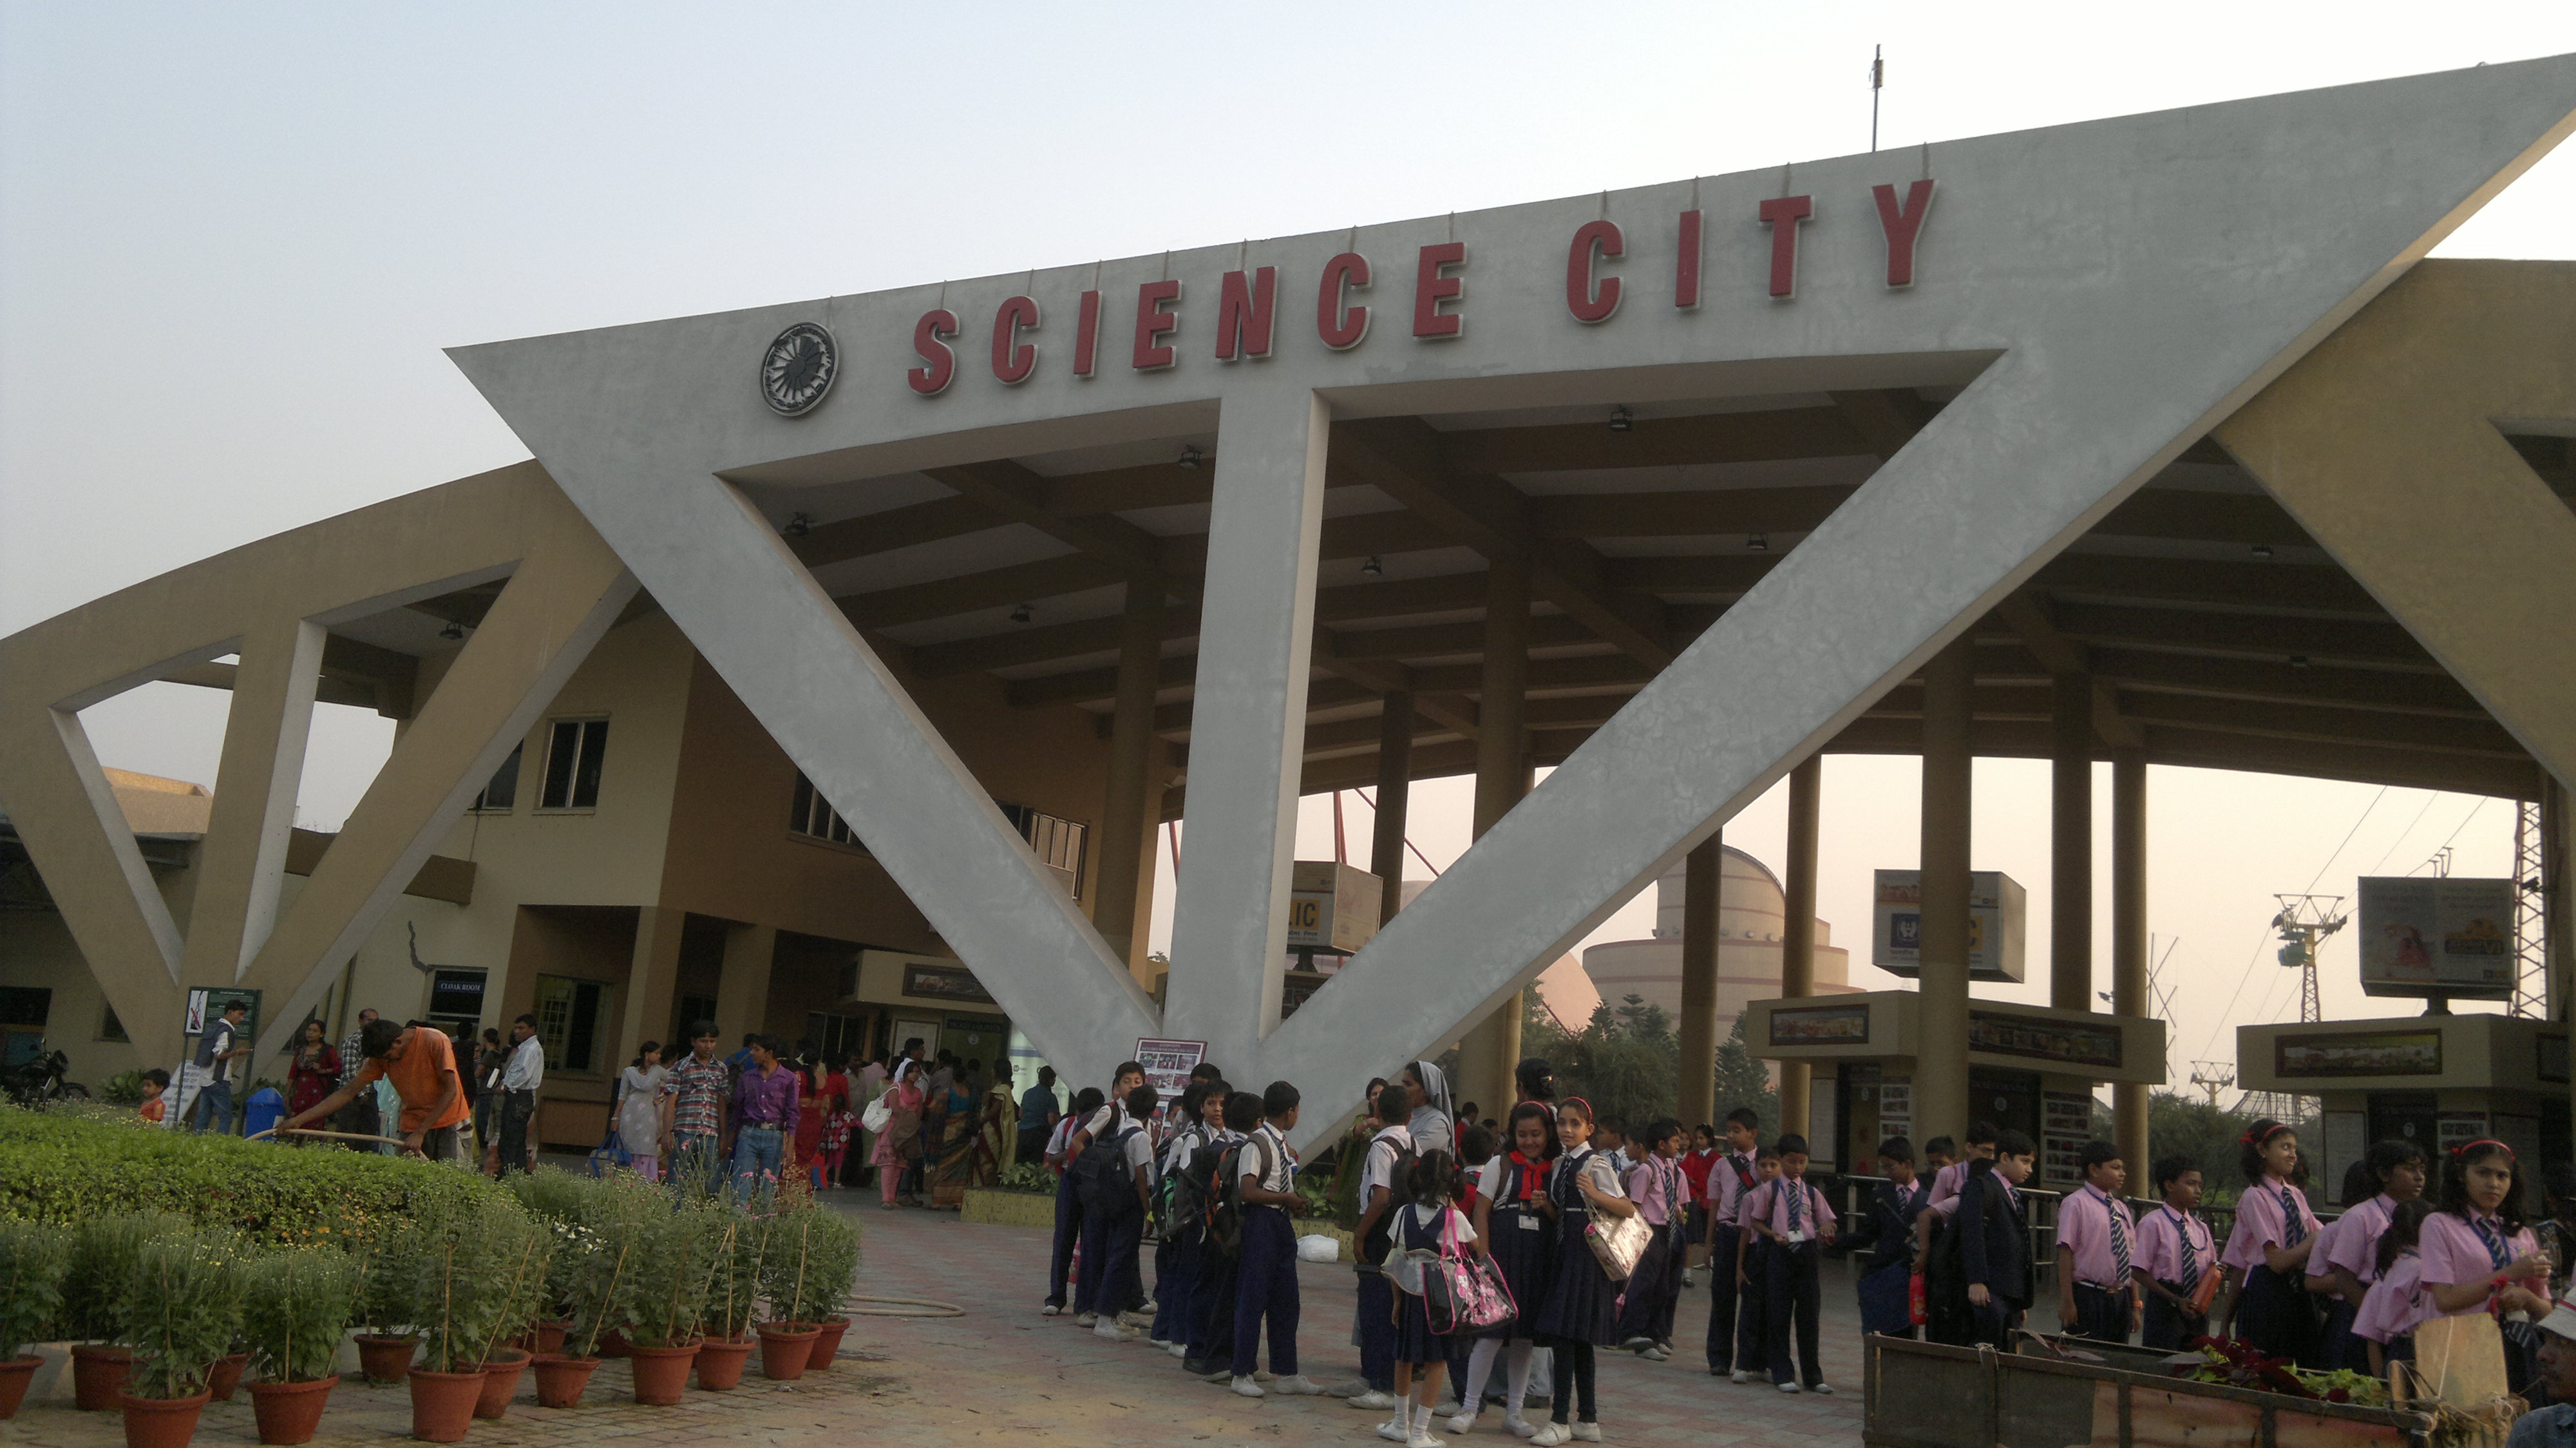 The Science City